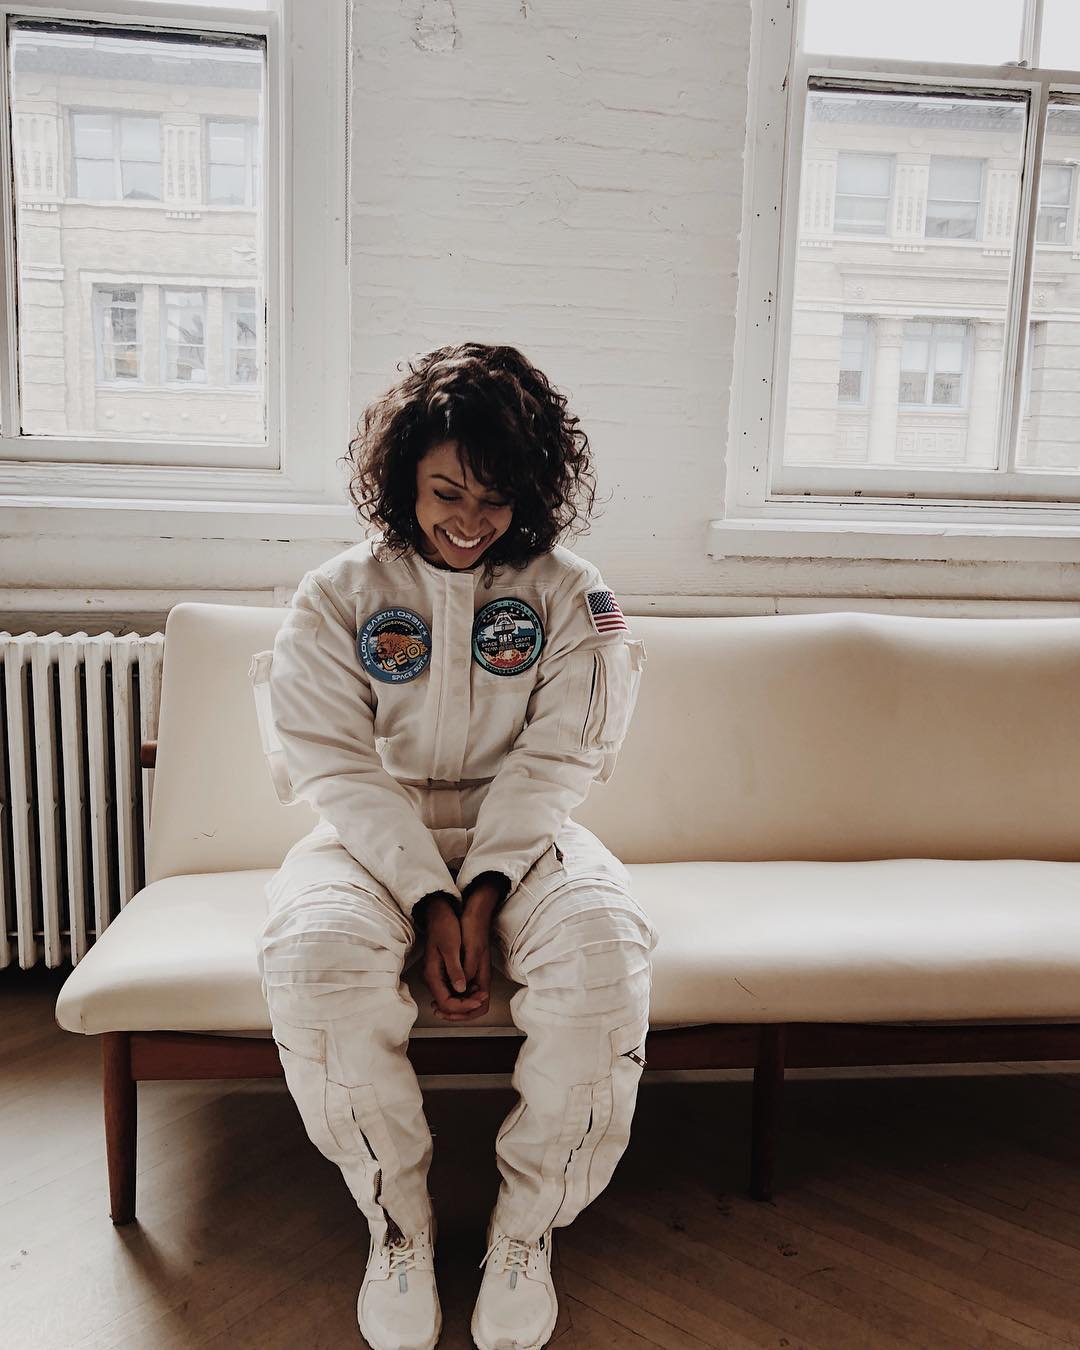 Liza Koshy With Curly Bob Hairstyle In Astronaut Suit Promoting Her Apparel 2020